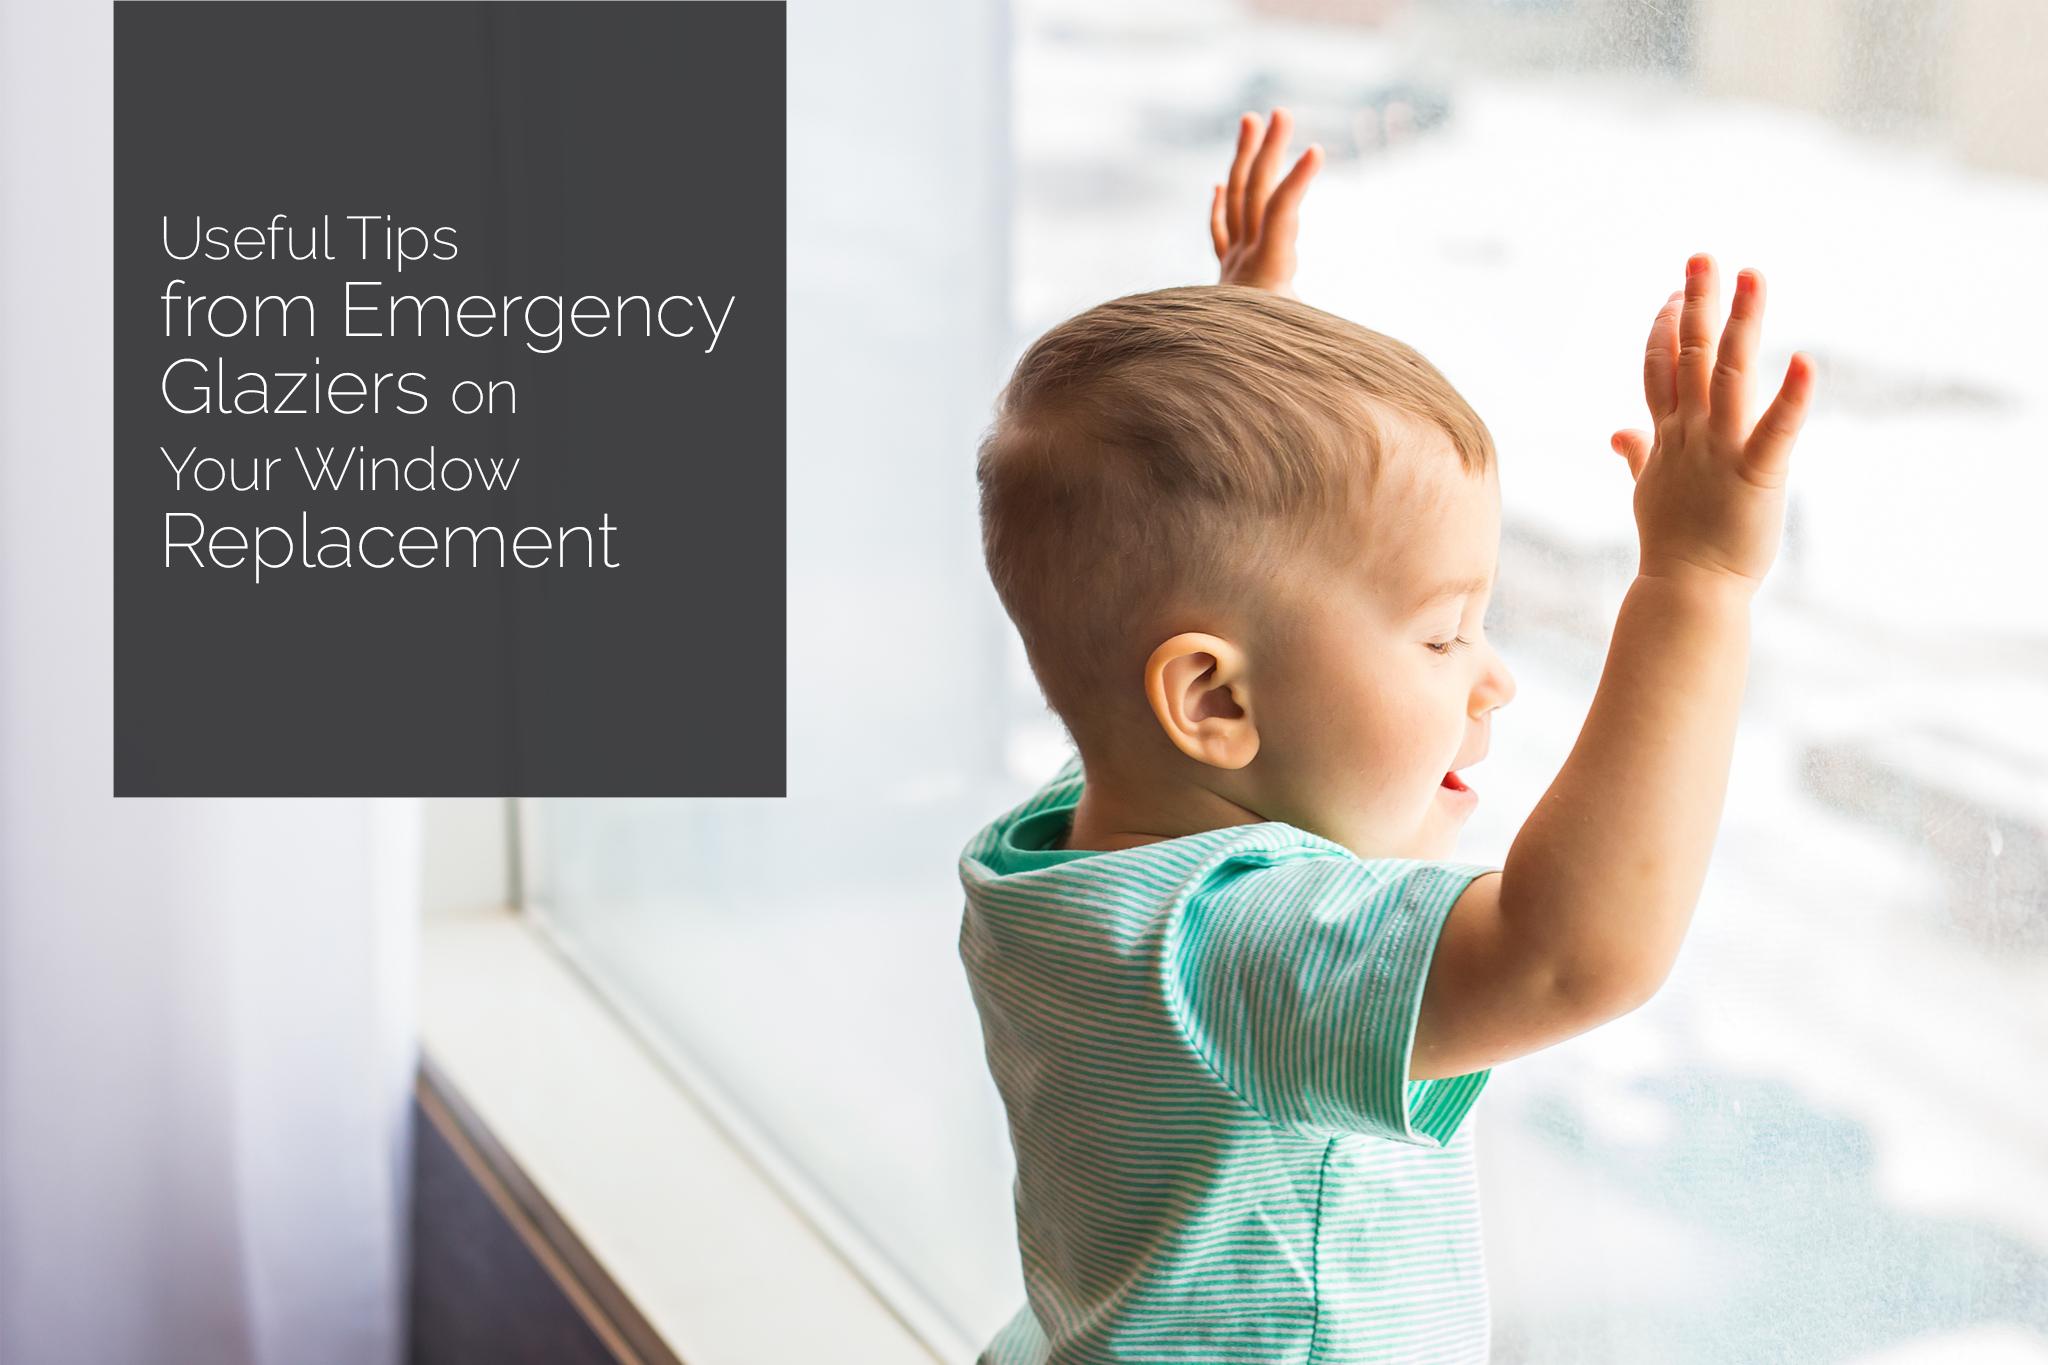 Right Glass Doors and Windows for the Safety of Your Child